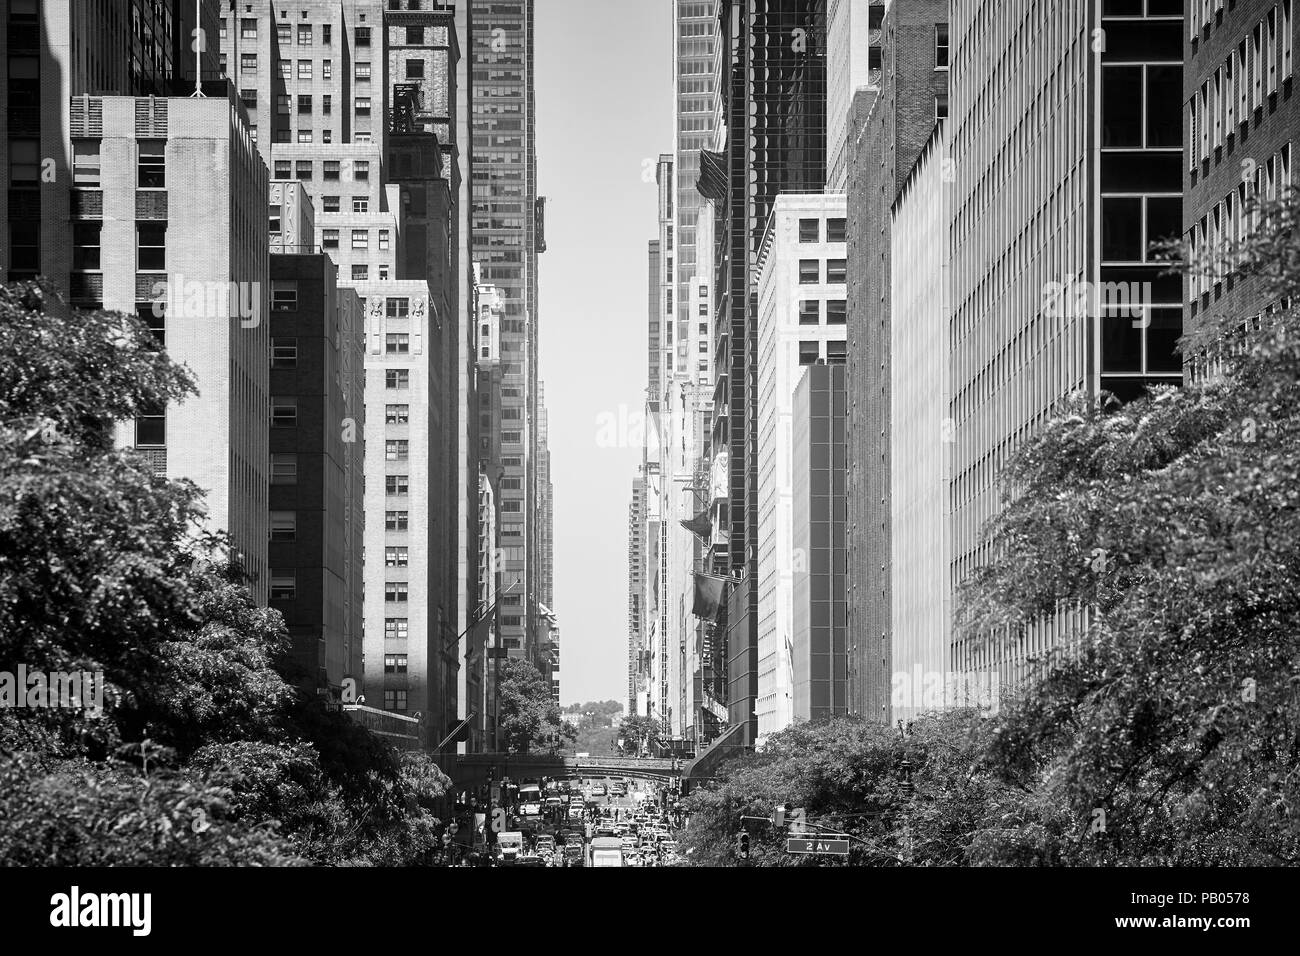 East 42nd Street during summer heat wave, New York City, USA. - Stock Image